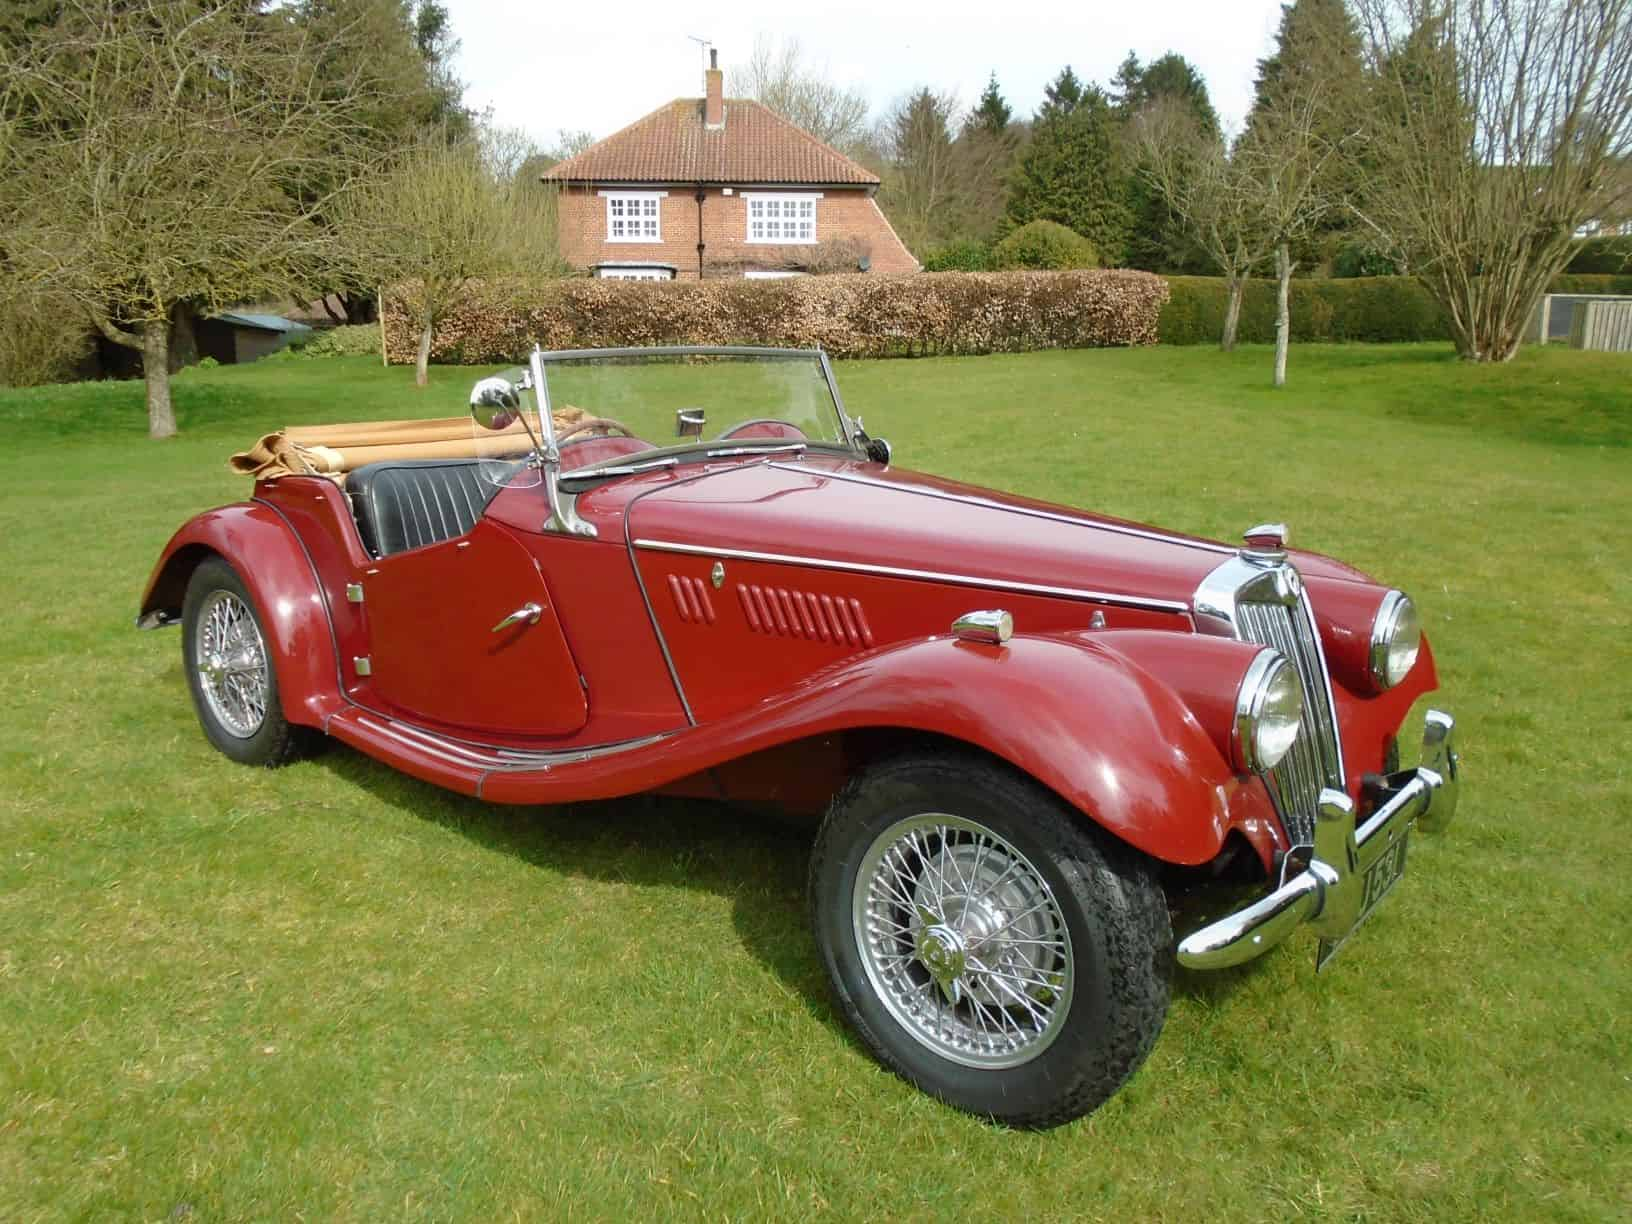 MG TF 1250cc 1954 for Sale